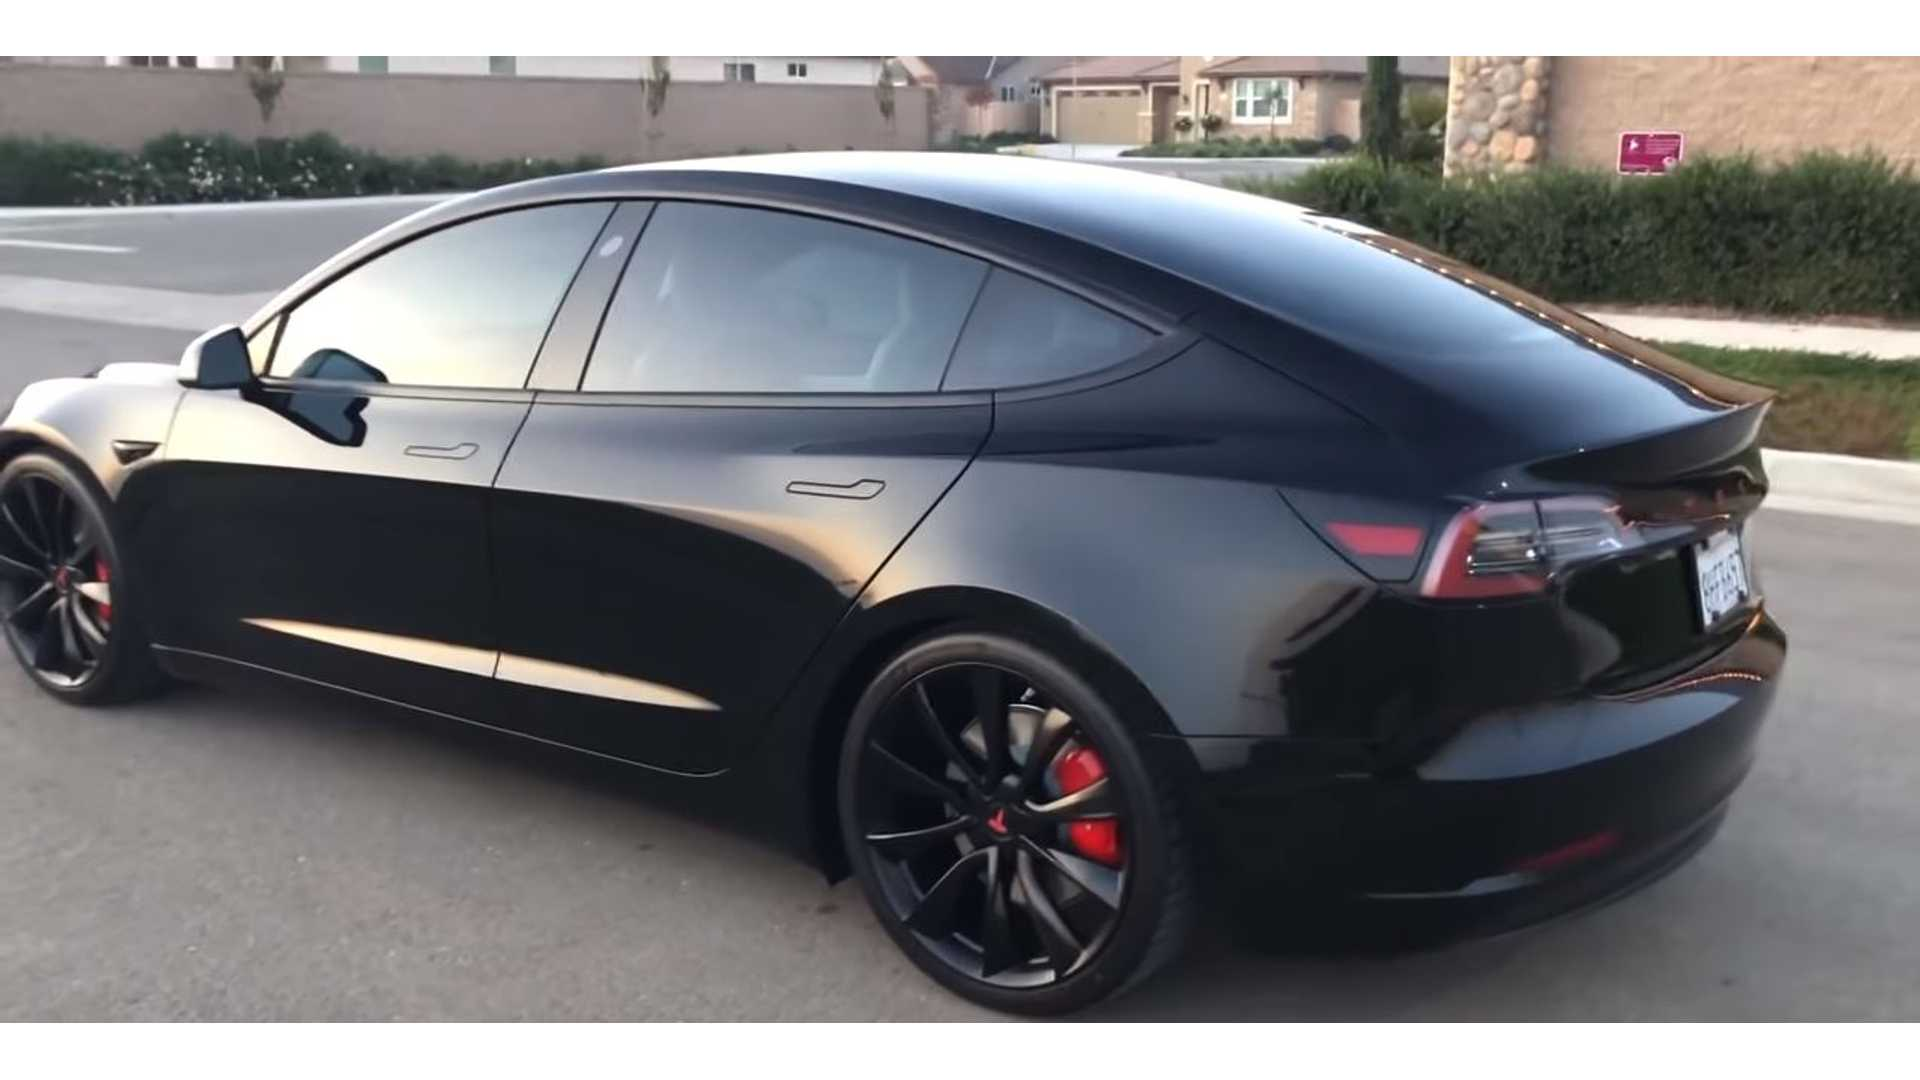 Check Out All The Mods On This Tesla Model 3 Performance